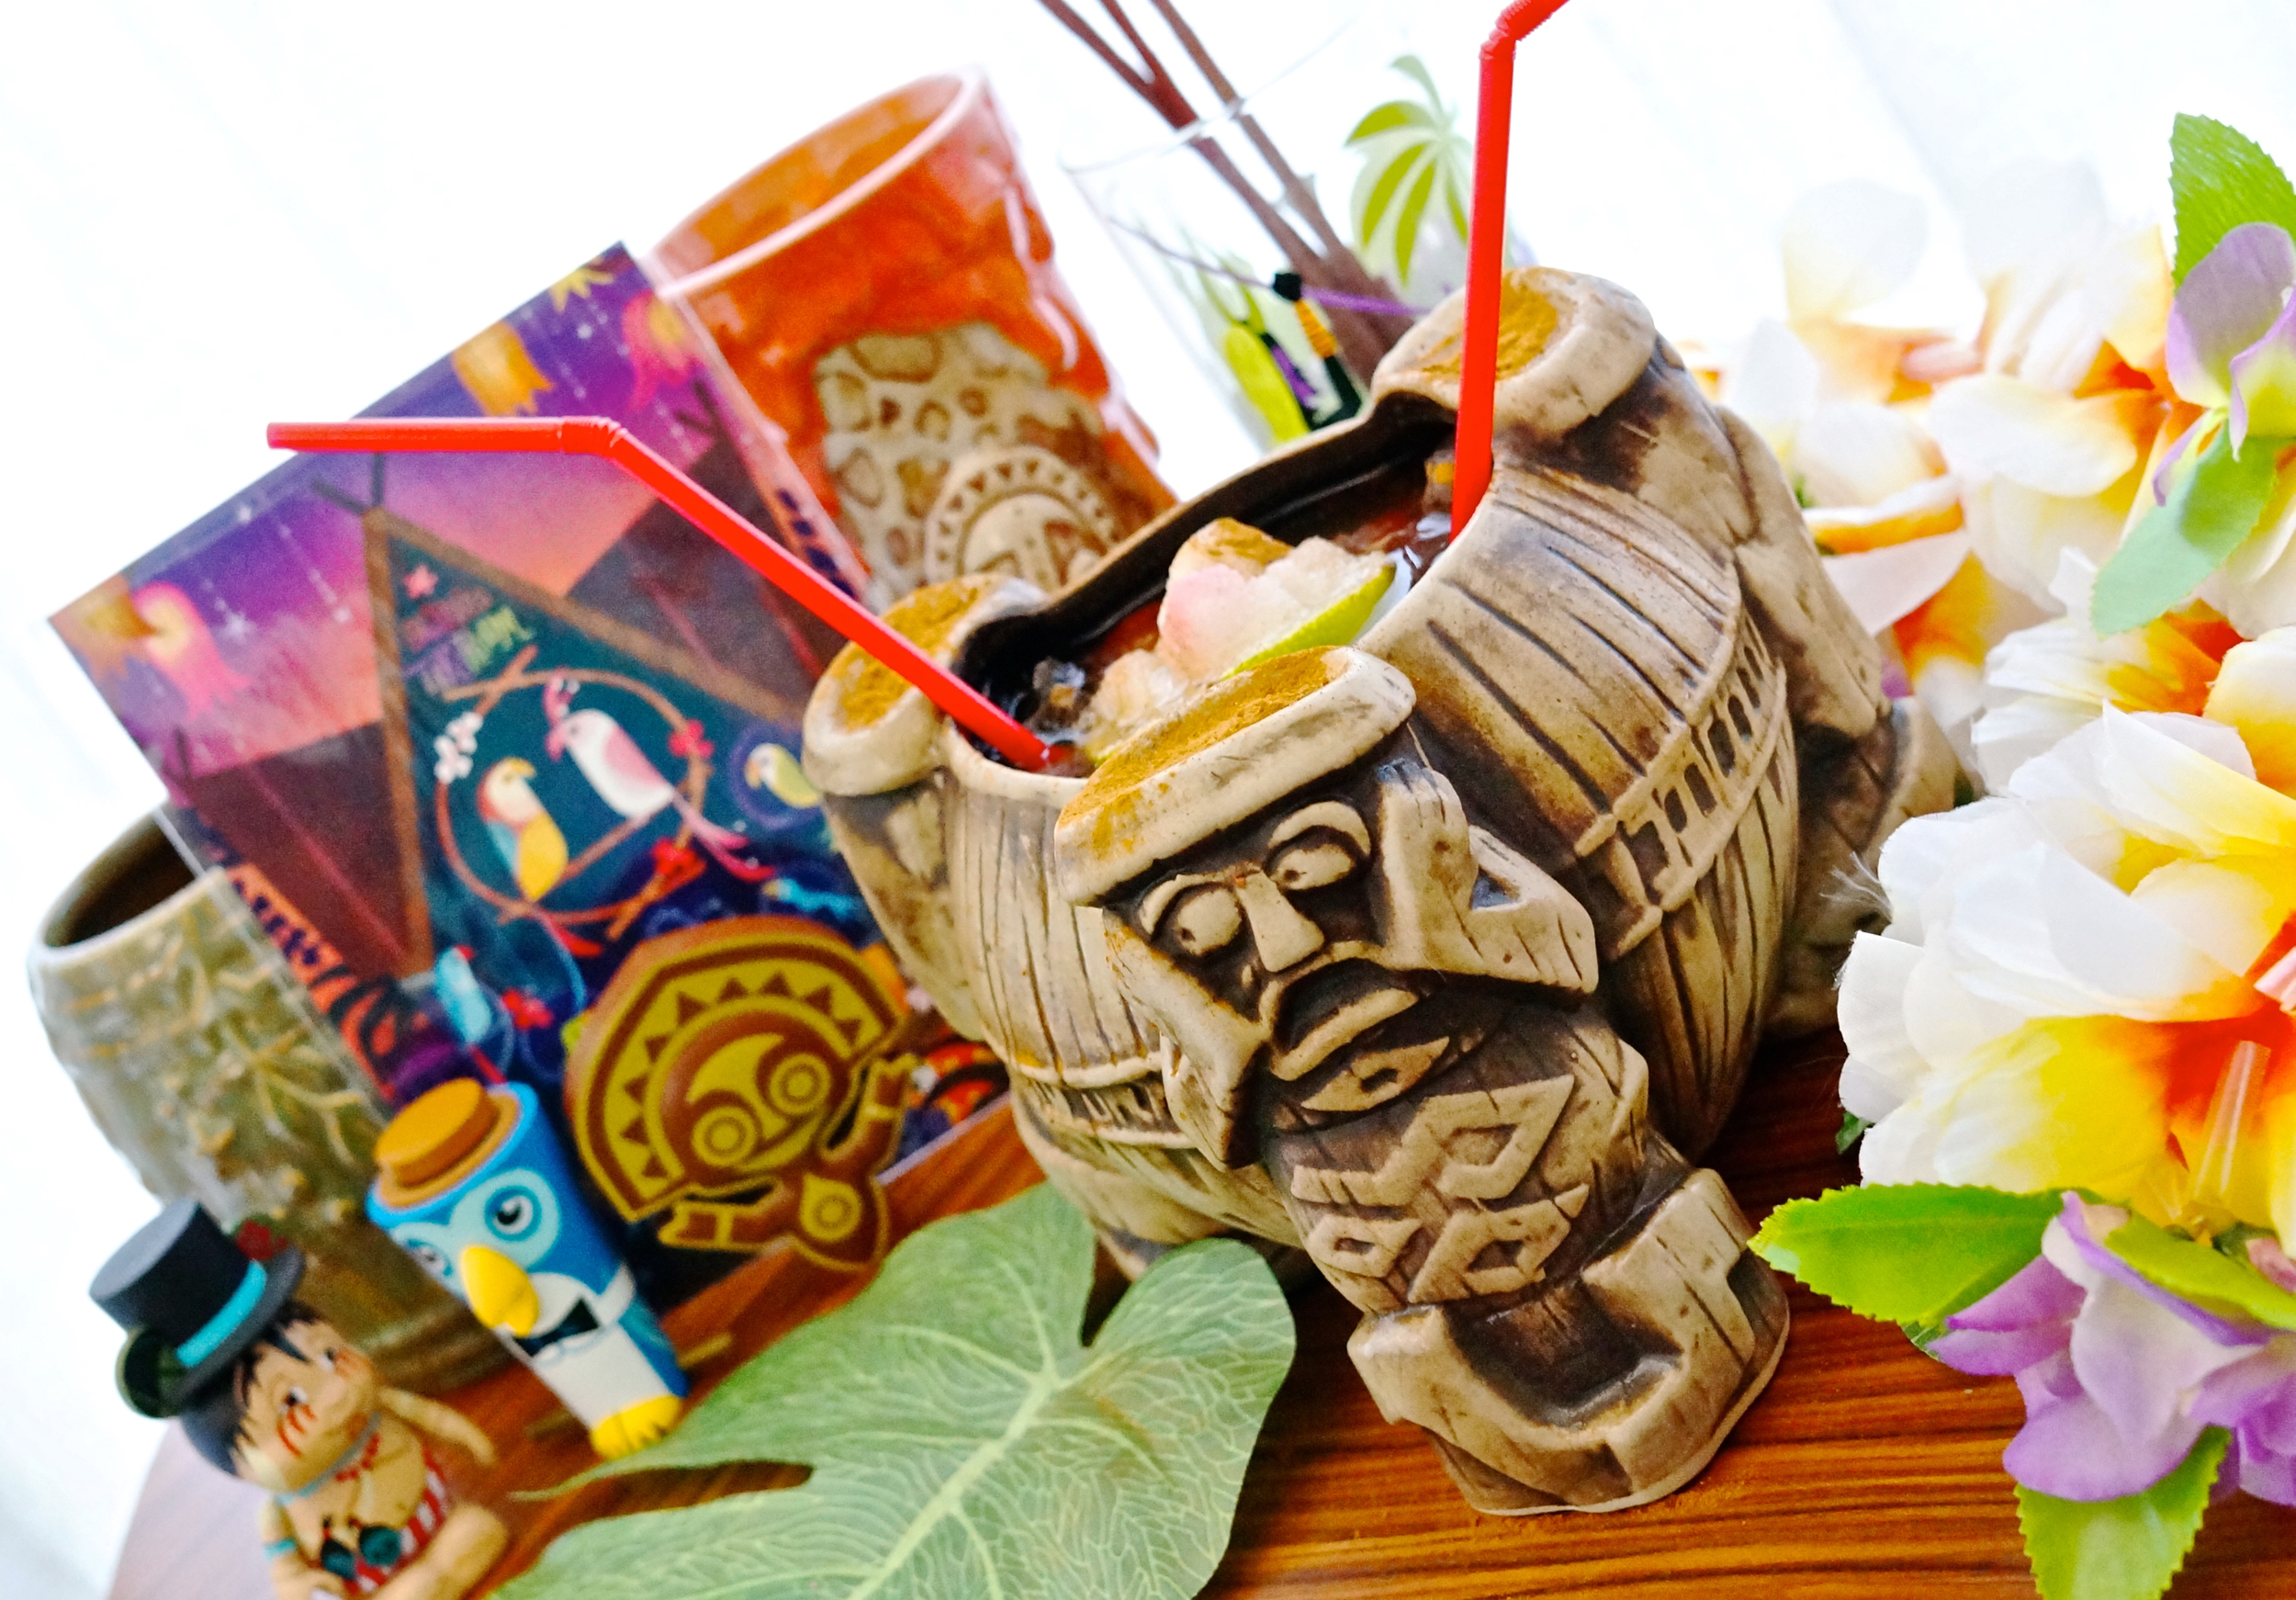 tiki-mug-monday-uh-oa.jpg